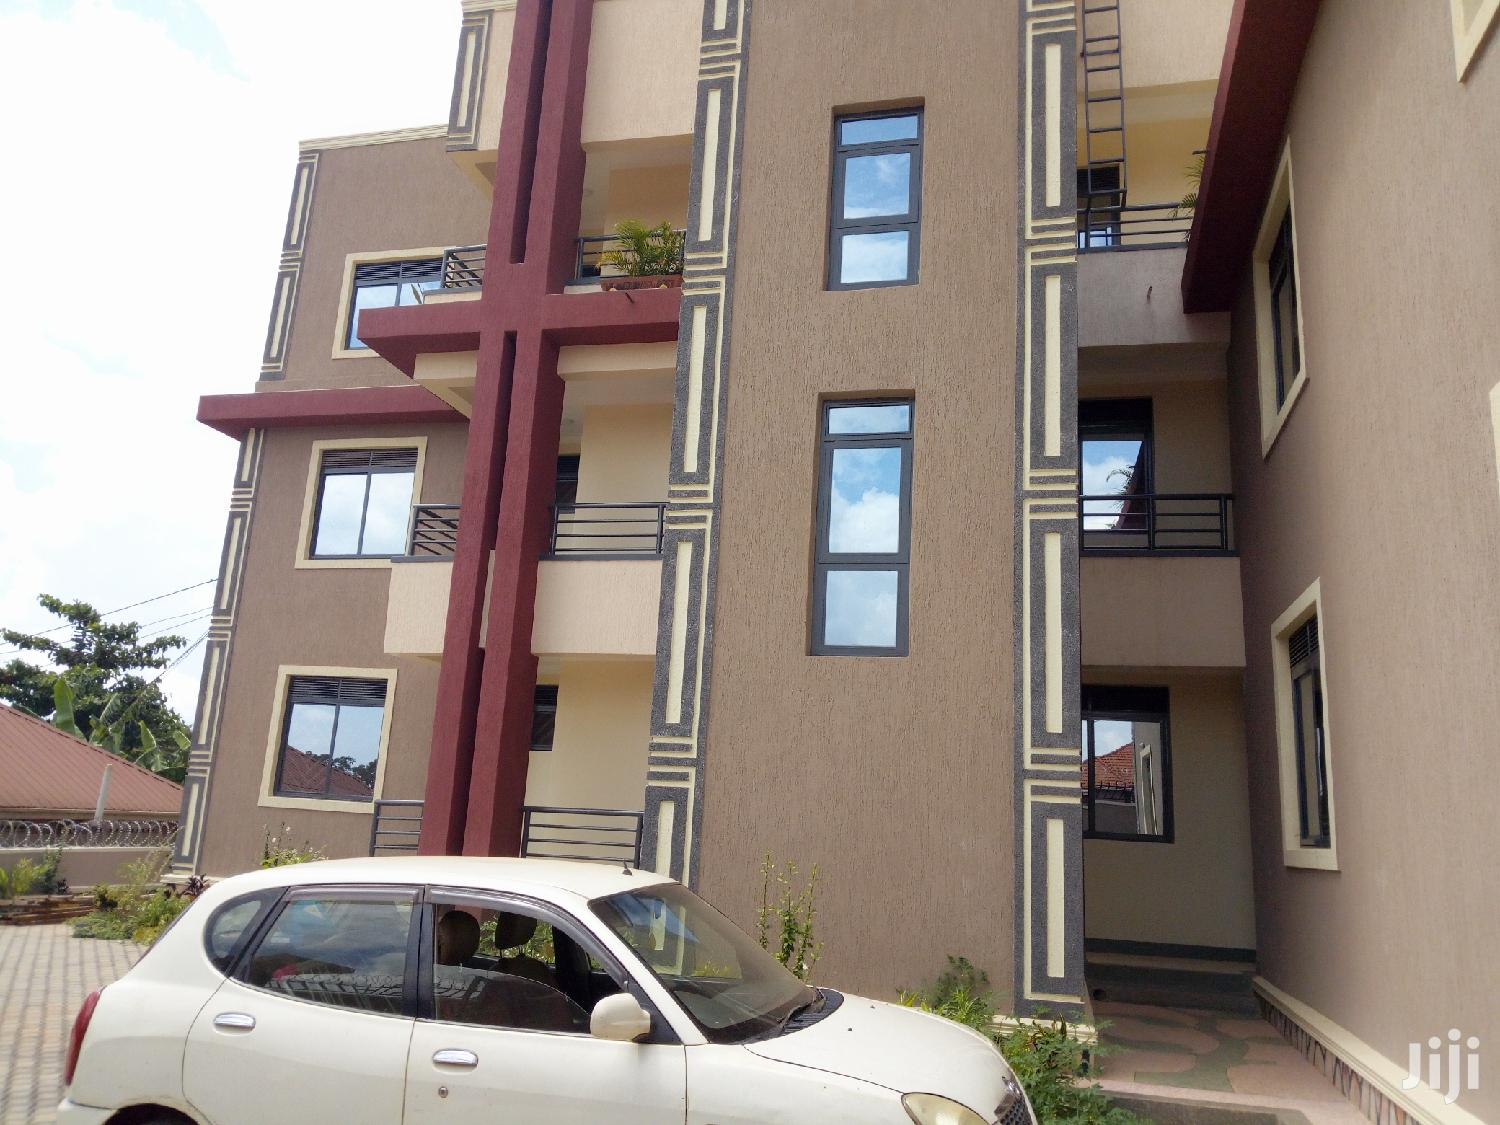 Kyanja Two Bedroom Apartment House For Rent In Kyanja | Houses & Apartments For Rent for sale in Kampala, Central Region, Uganda